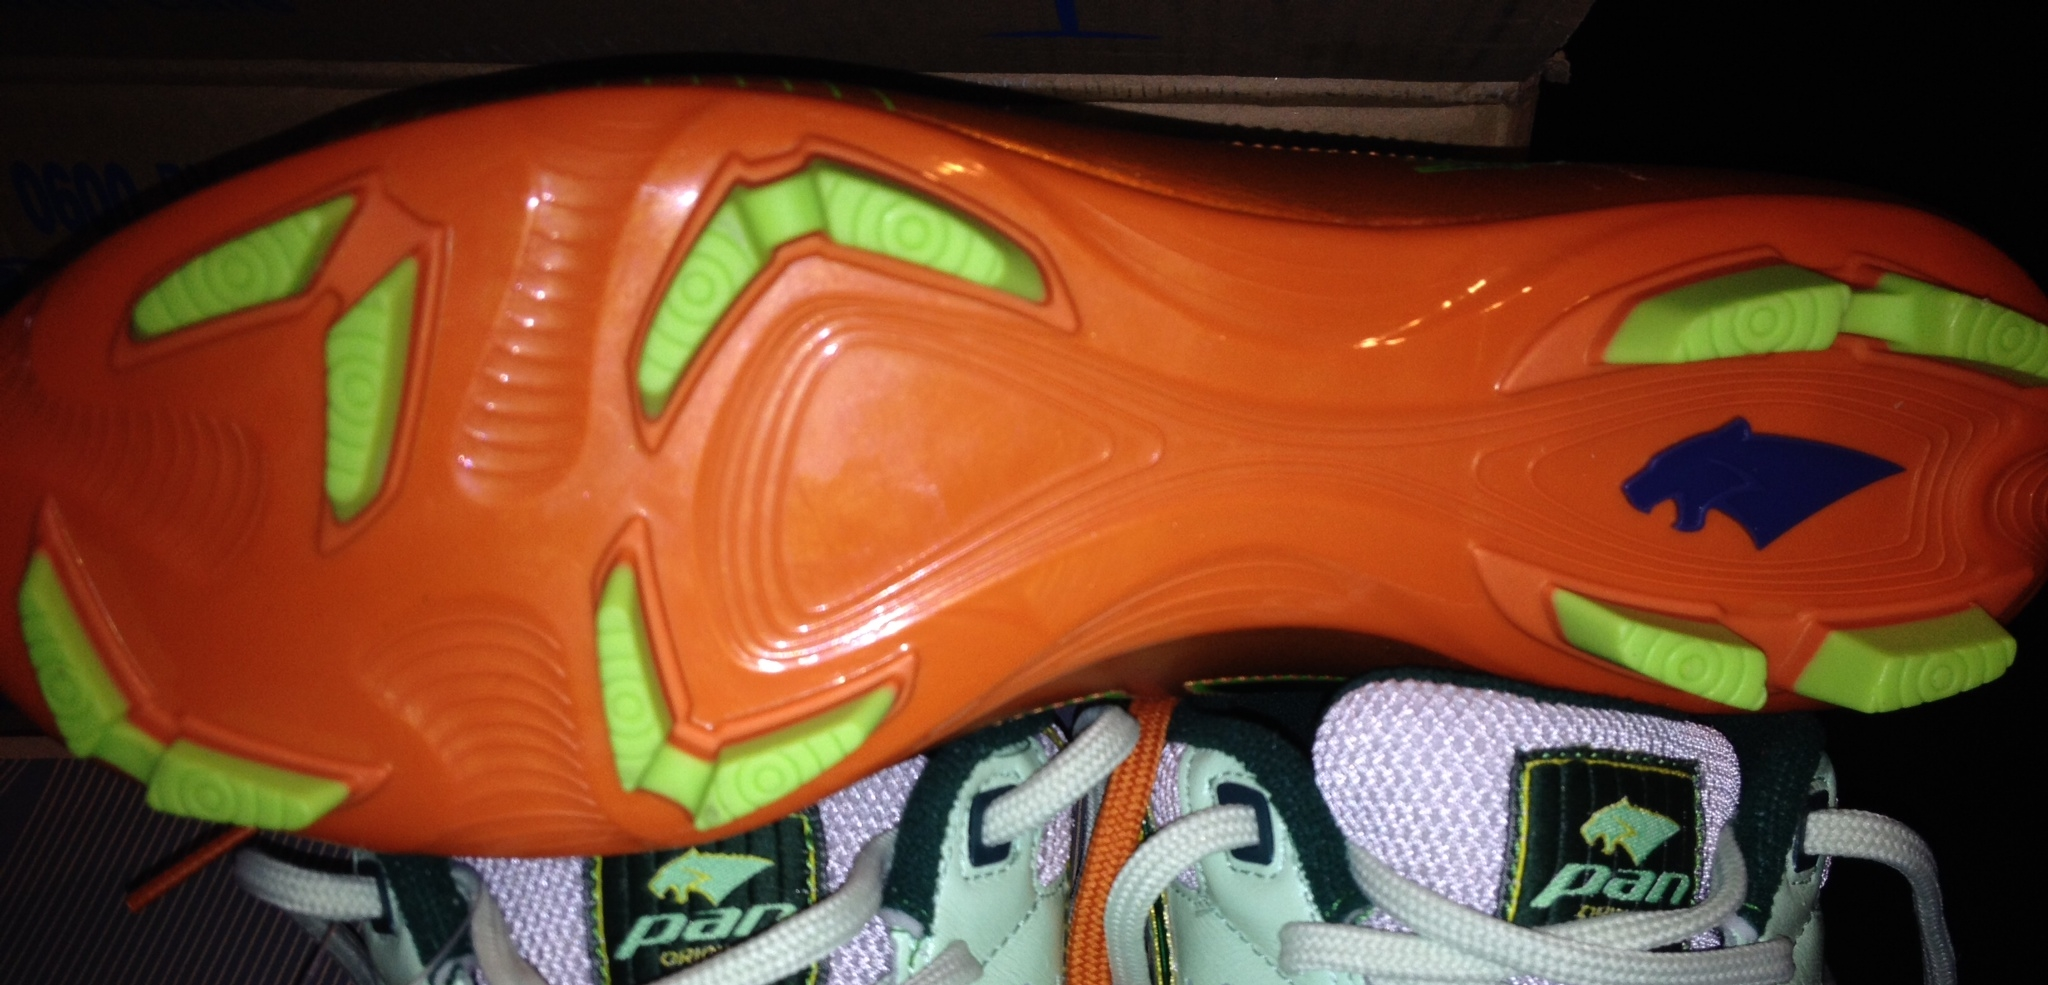 New Arrival: Pan Football Boots - The